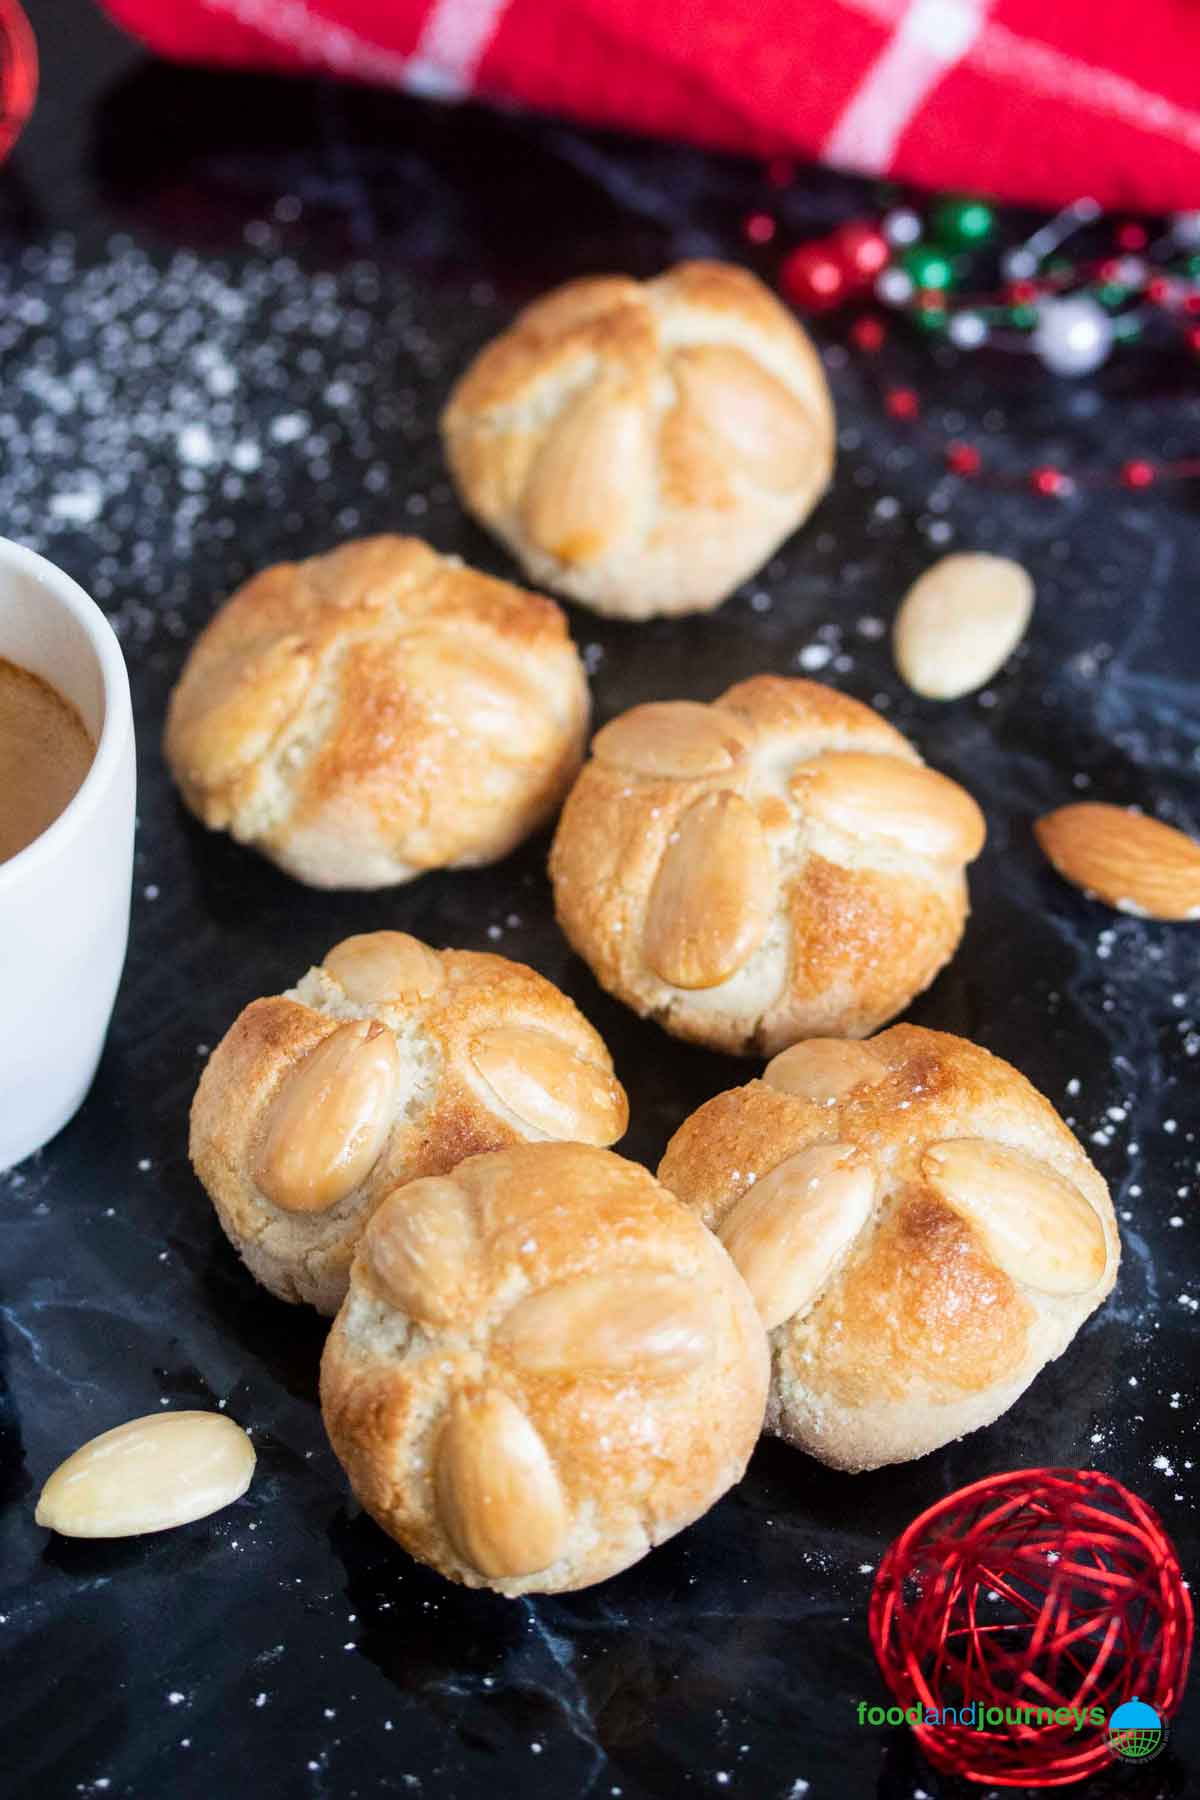 Originally from Frankfurt, Germany, these baked marzipan cookies are simply delicious; served here with a cup of coffee.